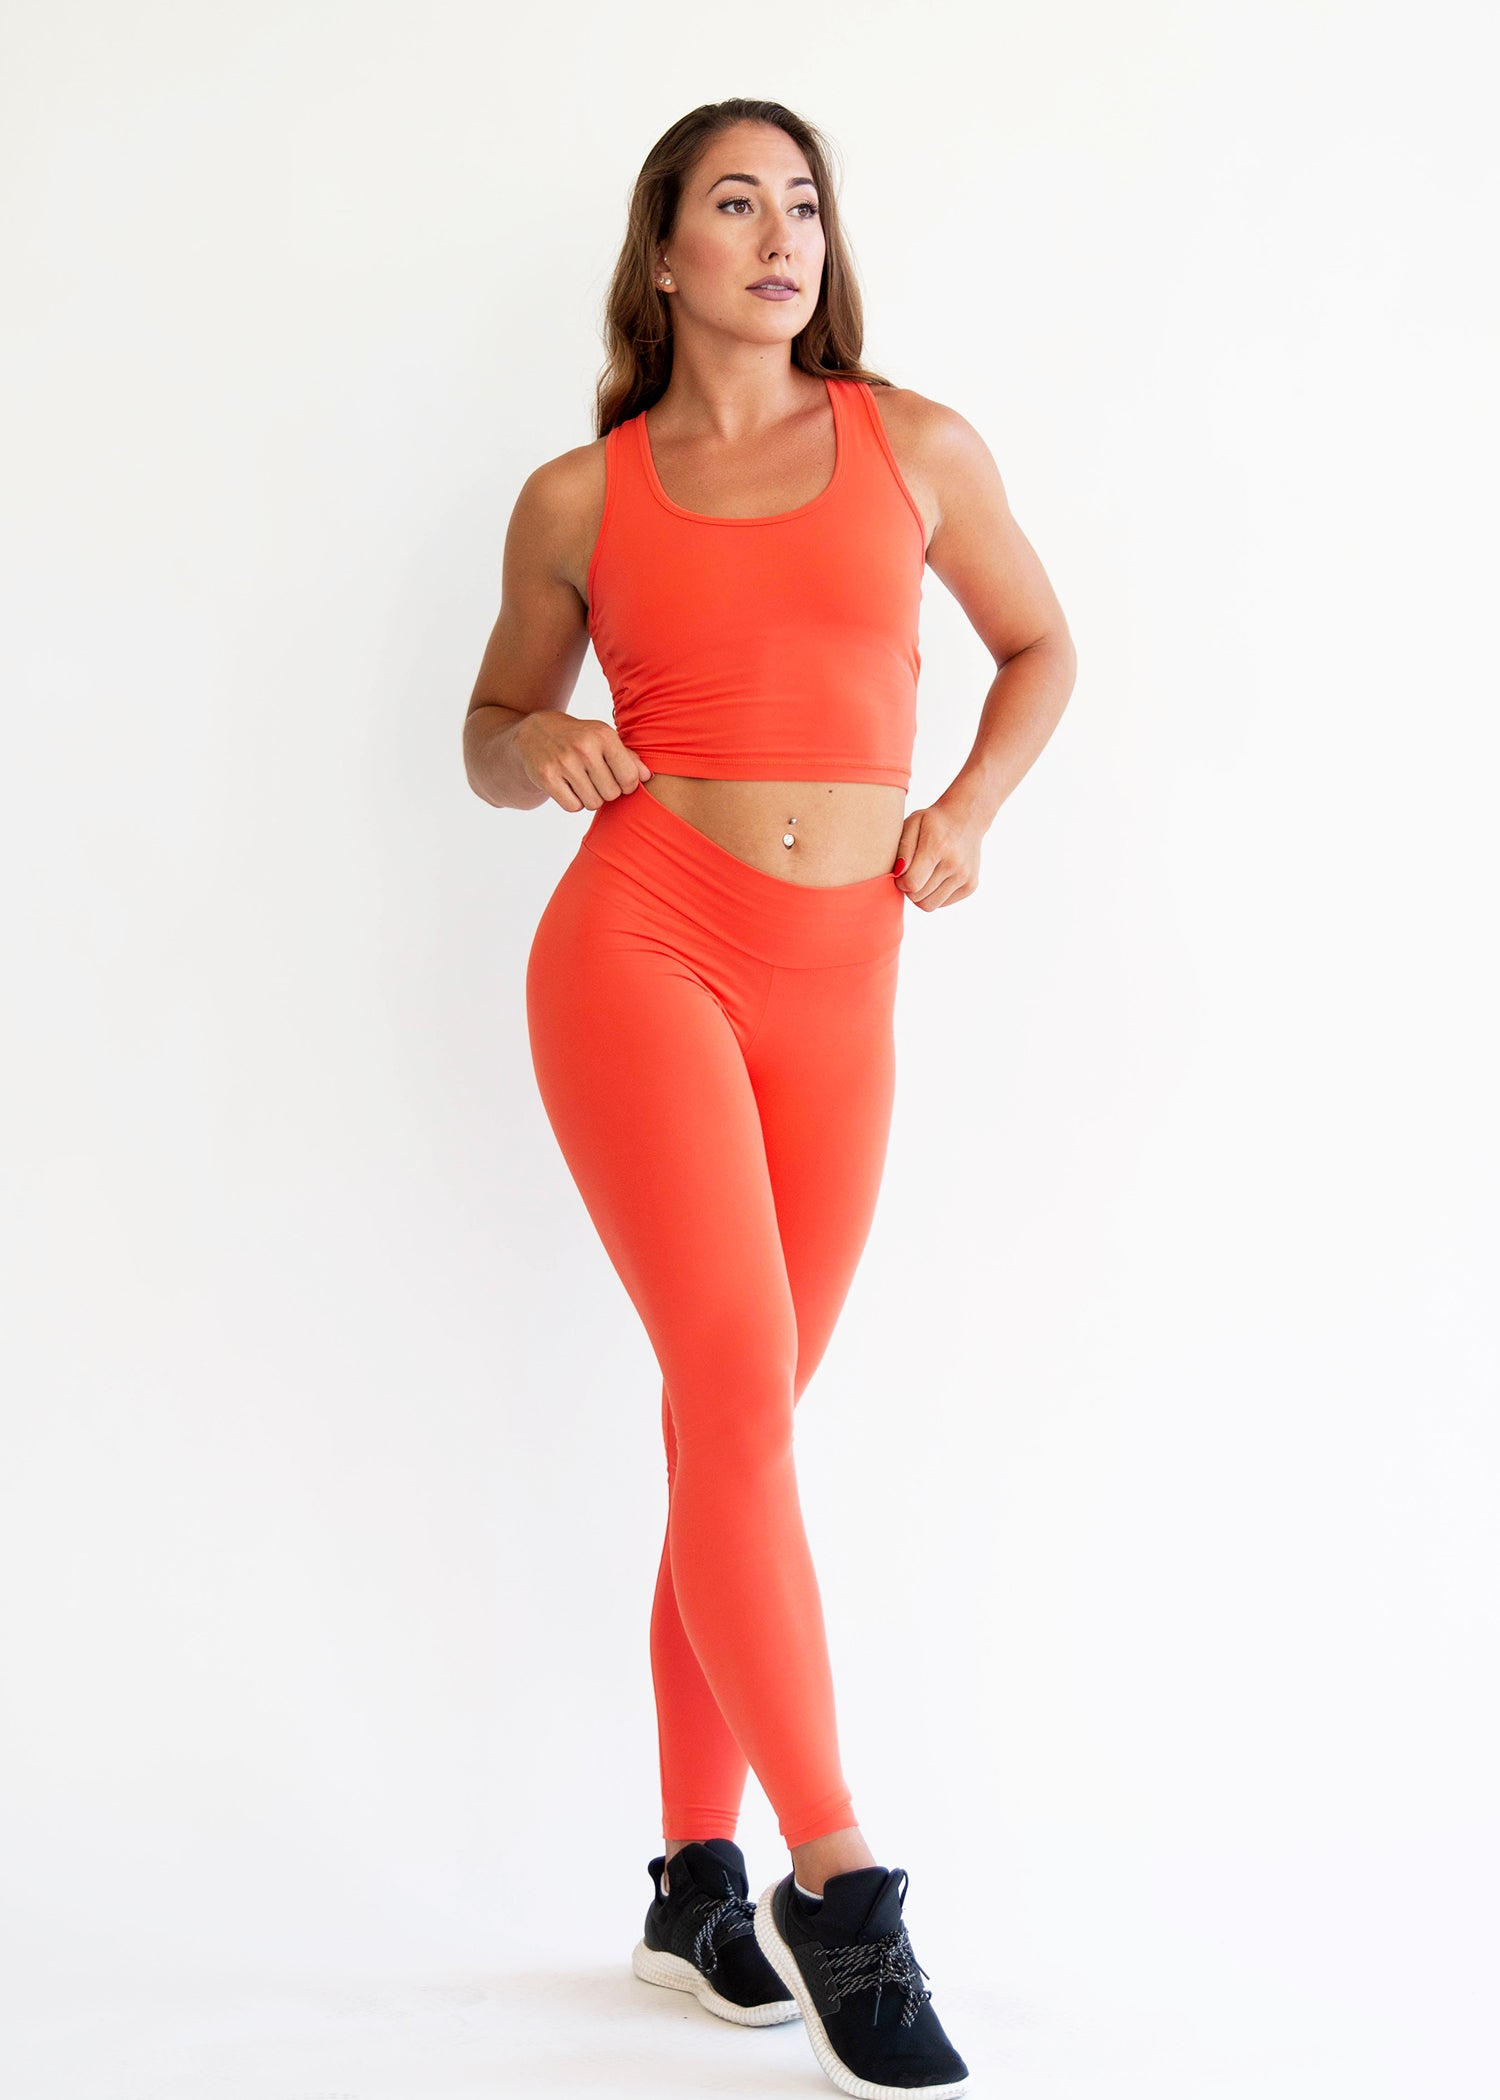 TANGERINE CROP TOP MATCHING SET